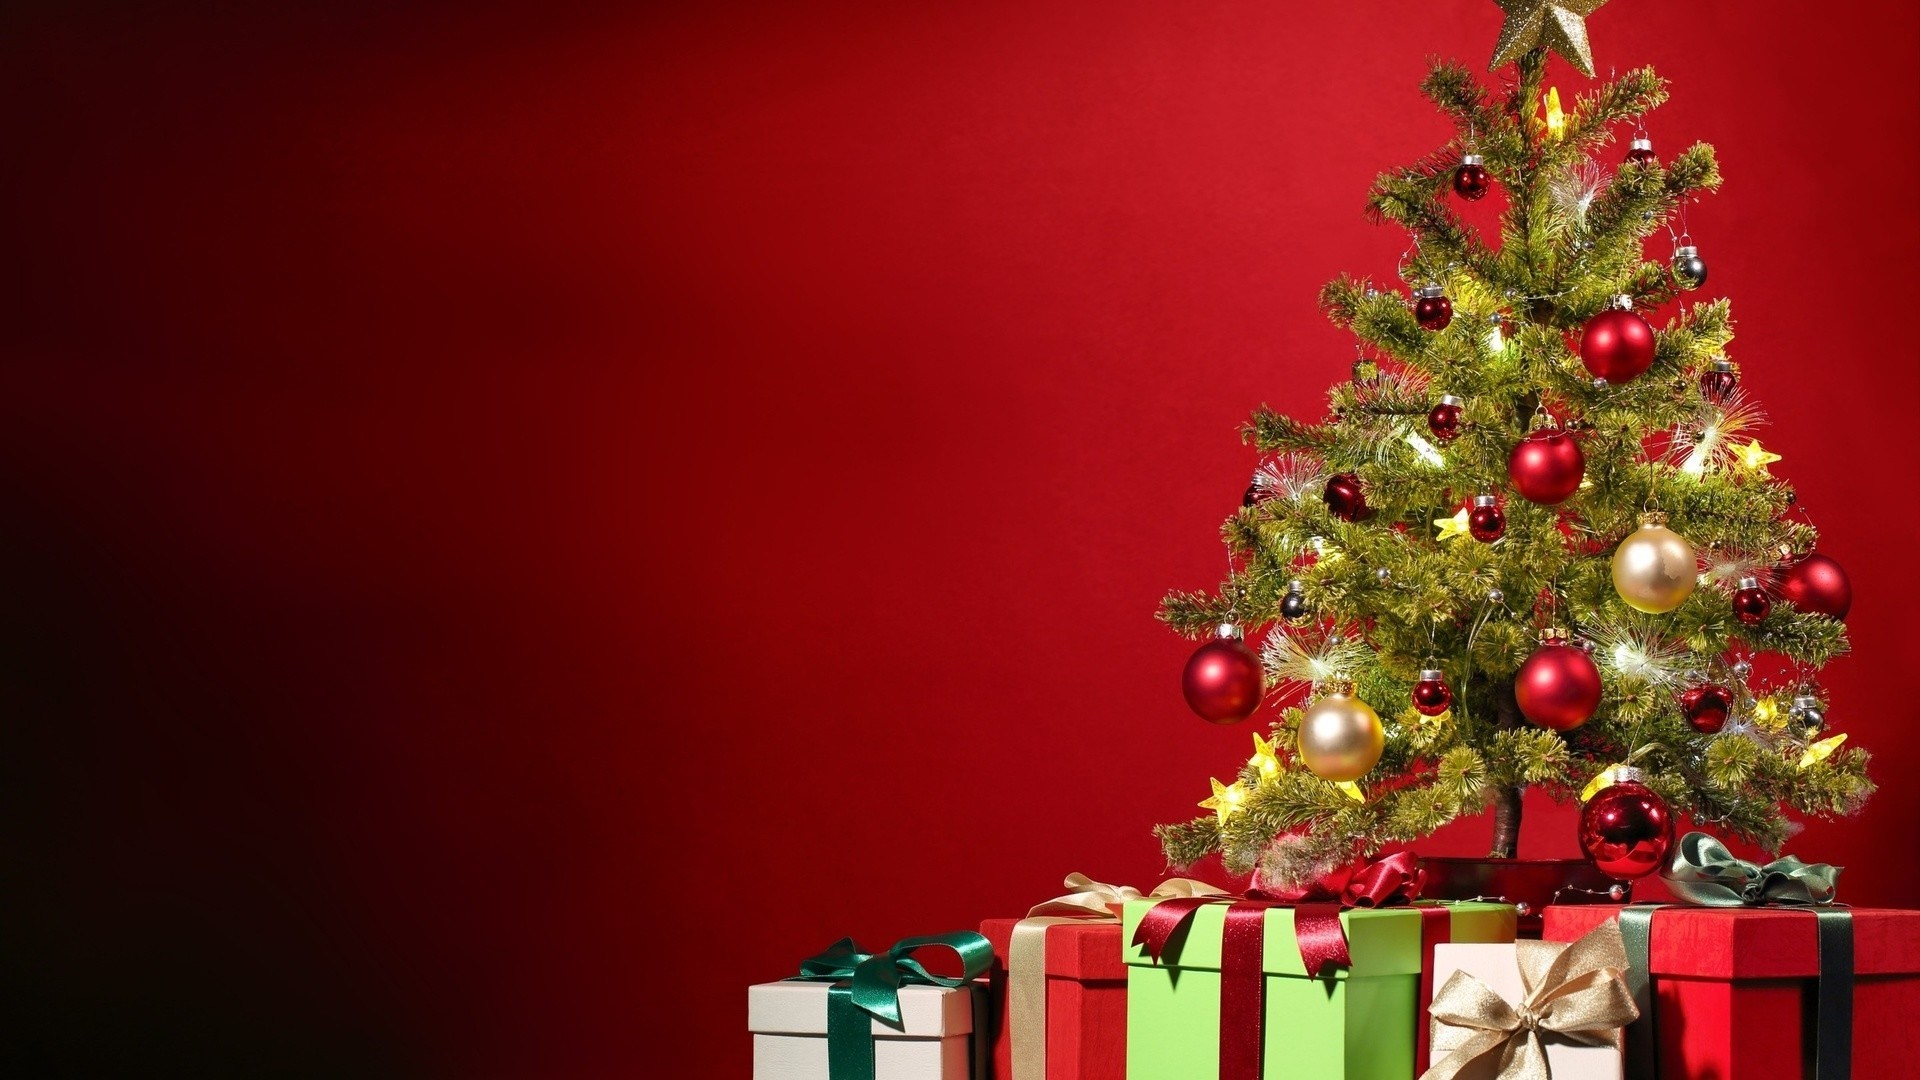 1920x1080 Christmas Wallpapers 84 Background Pictures